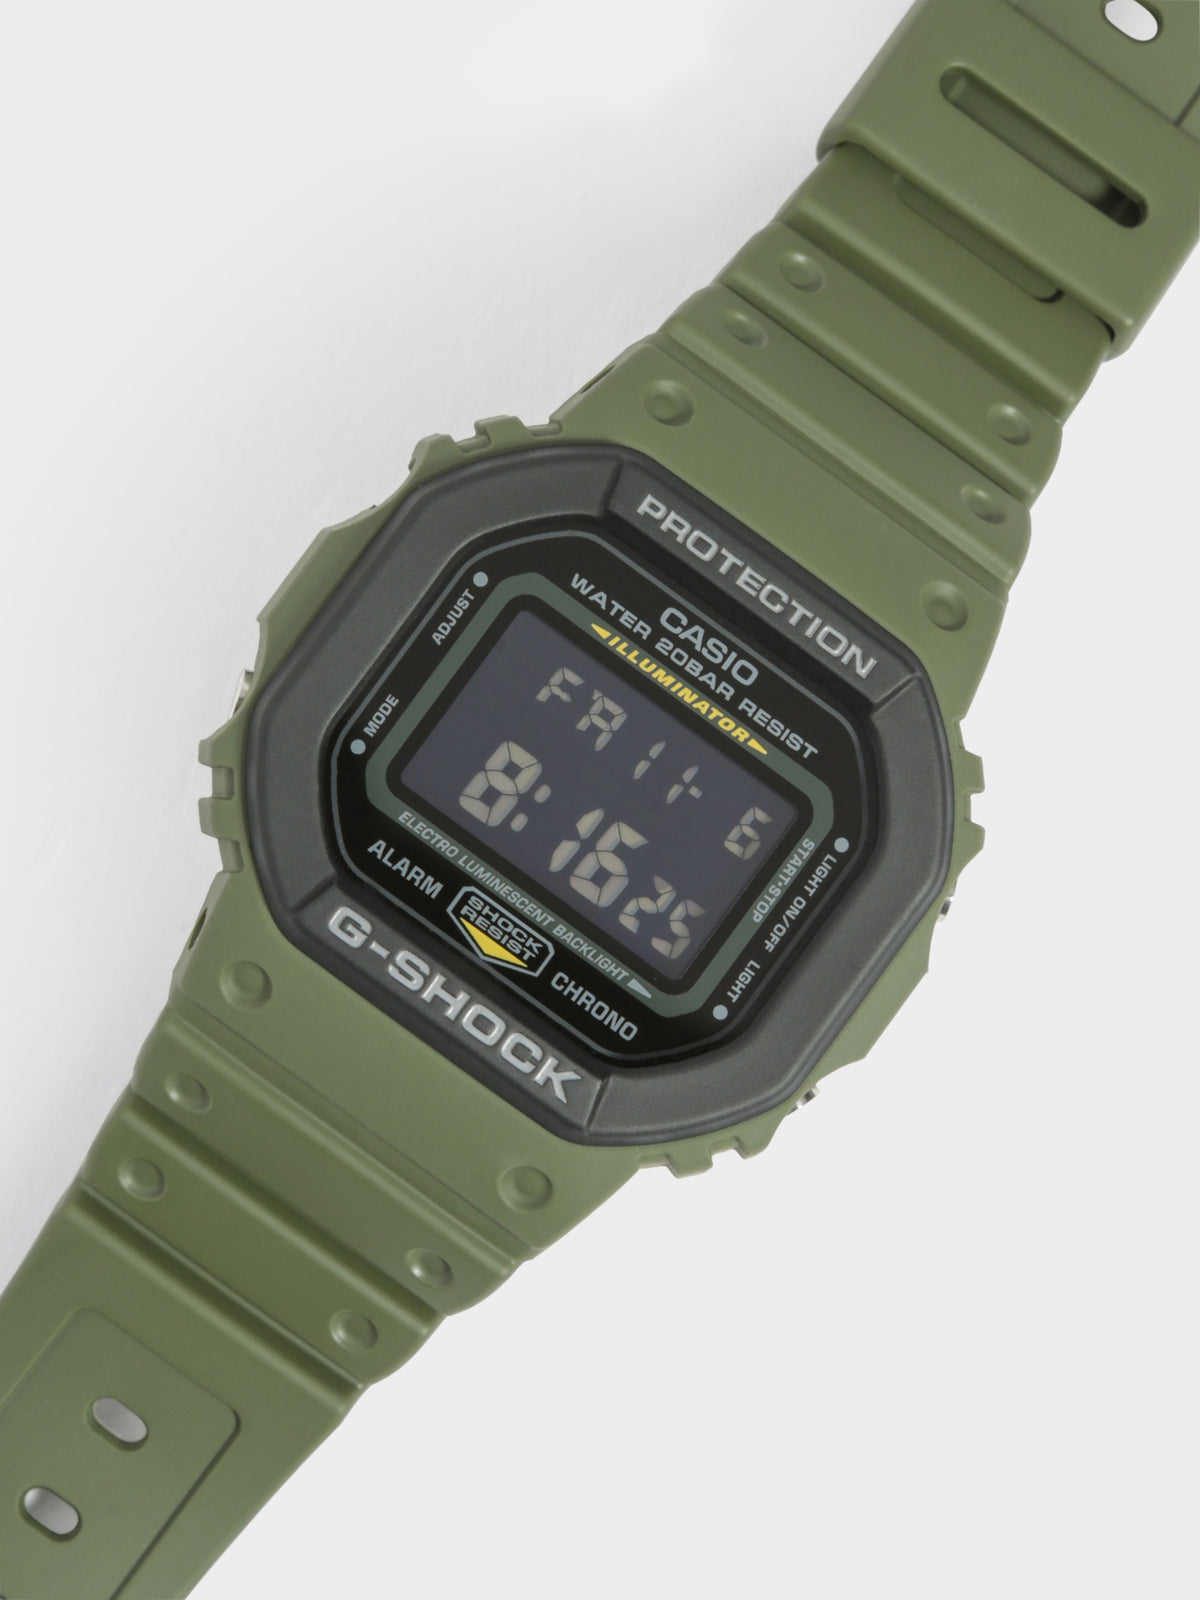 Square face DW-5600 Watch in Khaki